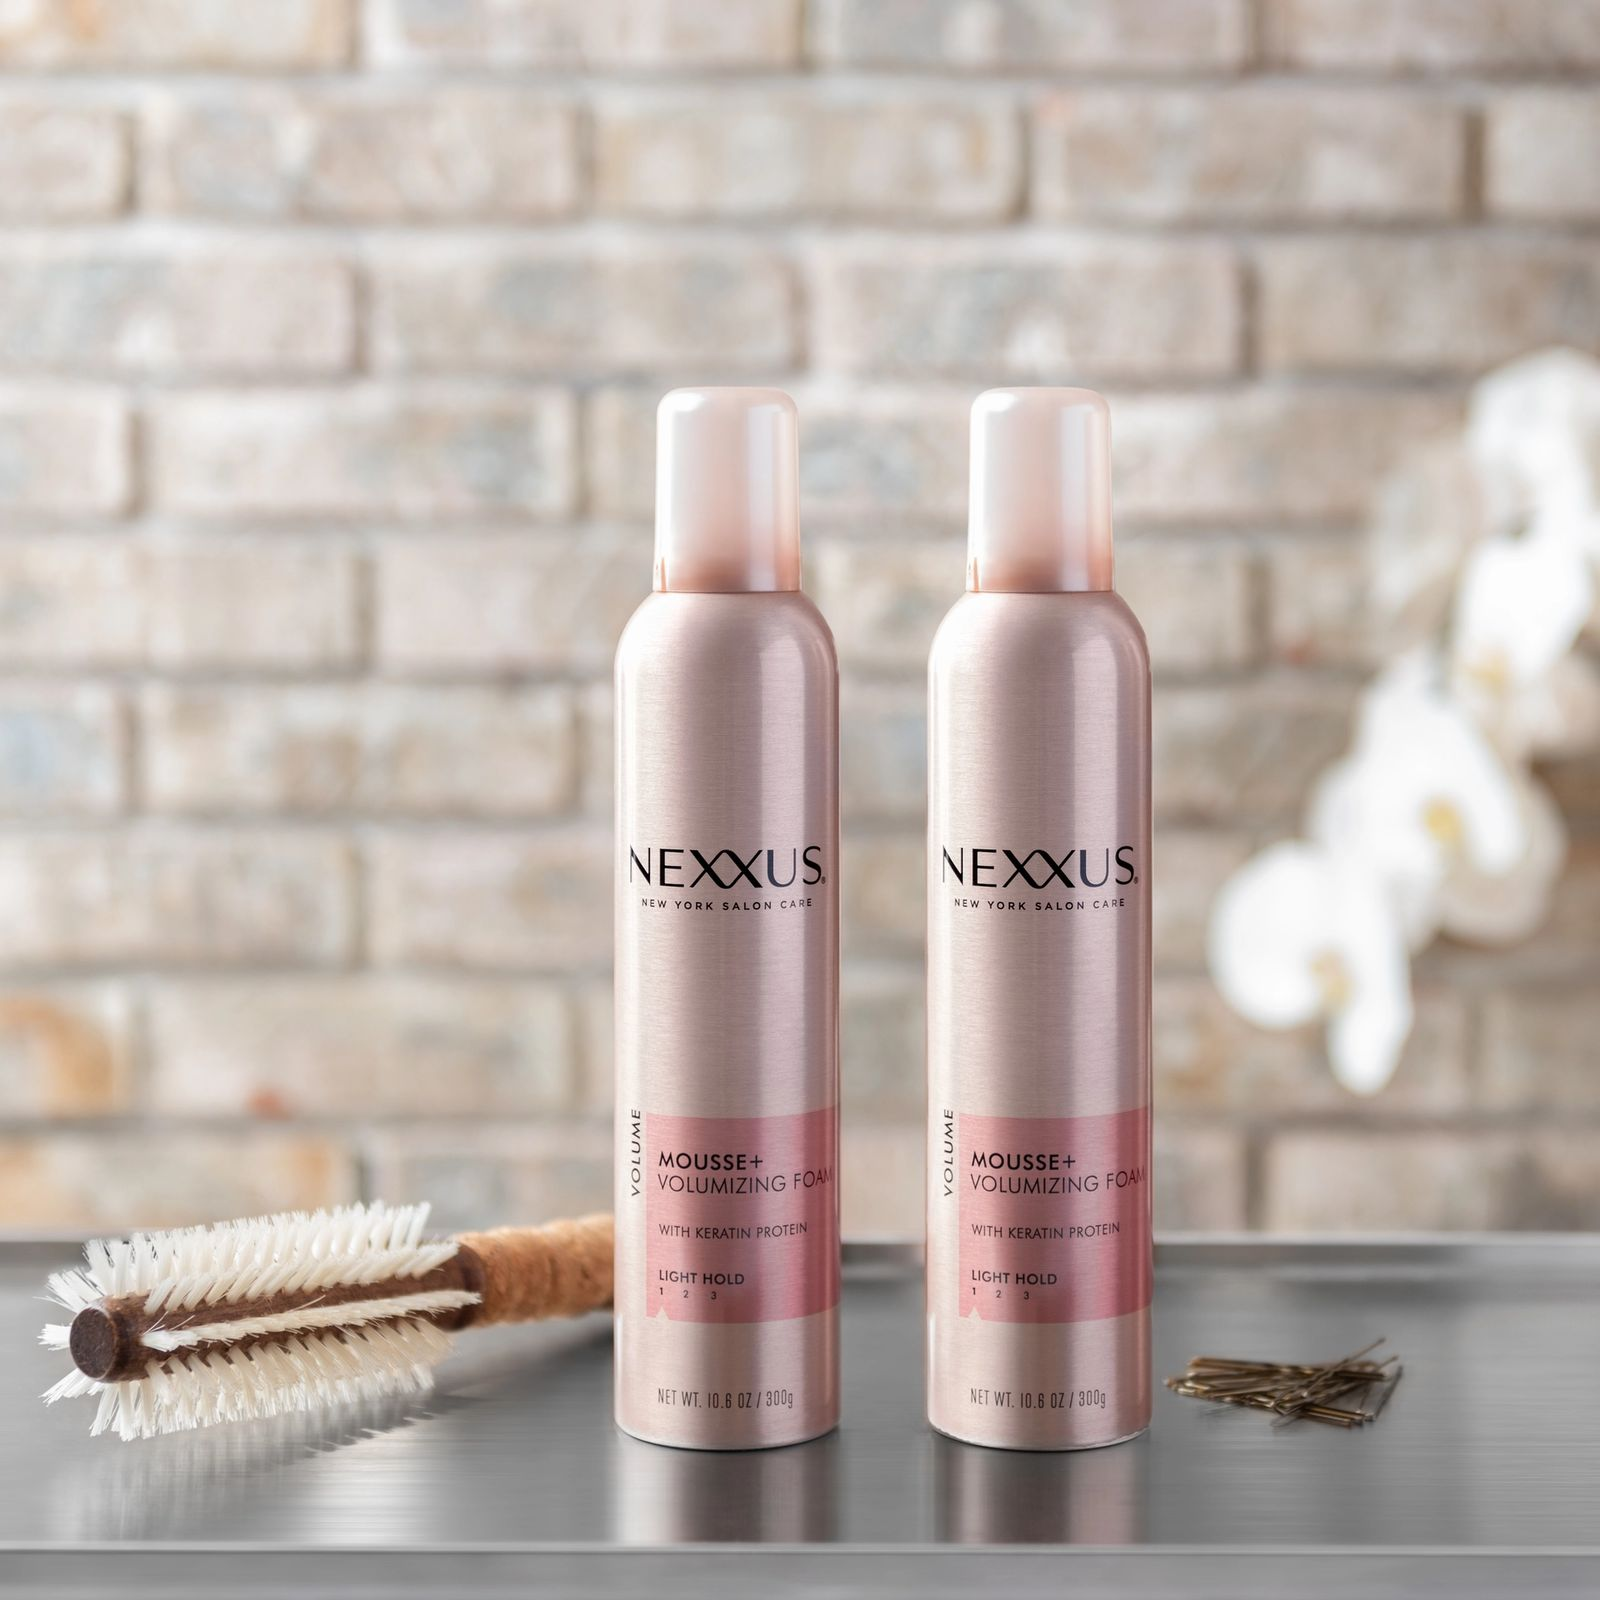 Nexxus Mousse Plus Volumizing Foam Product Shot